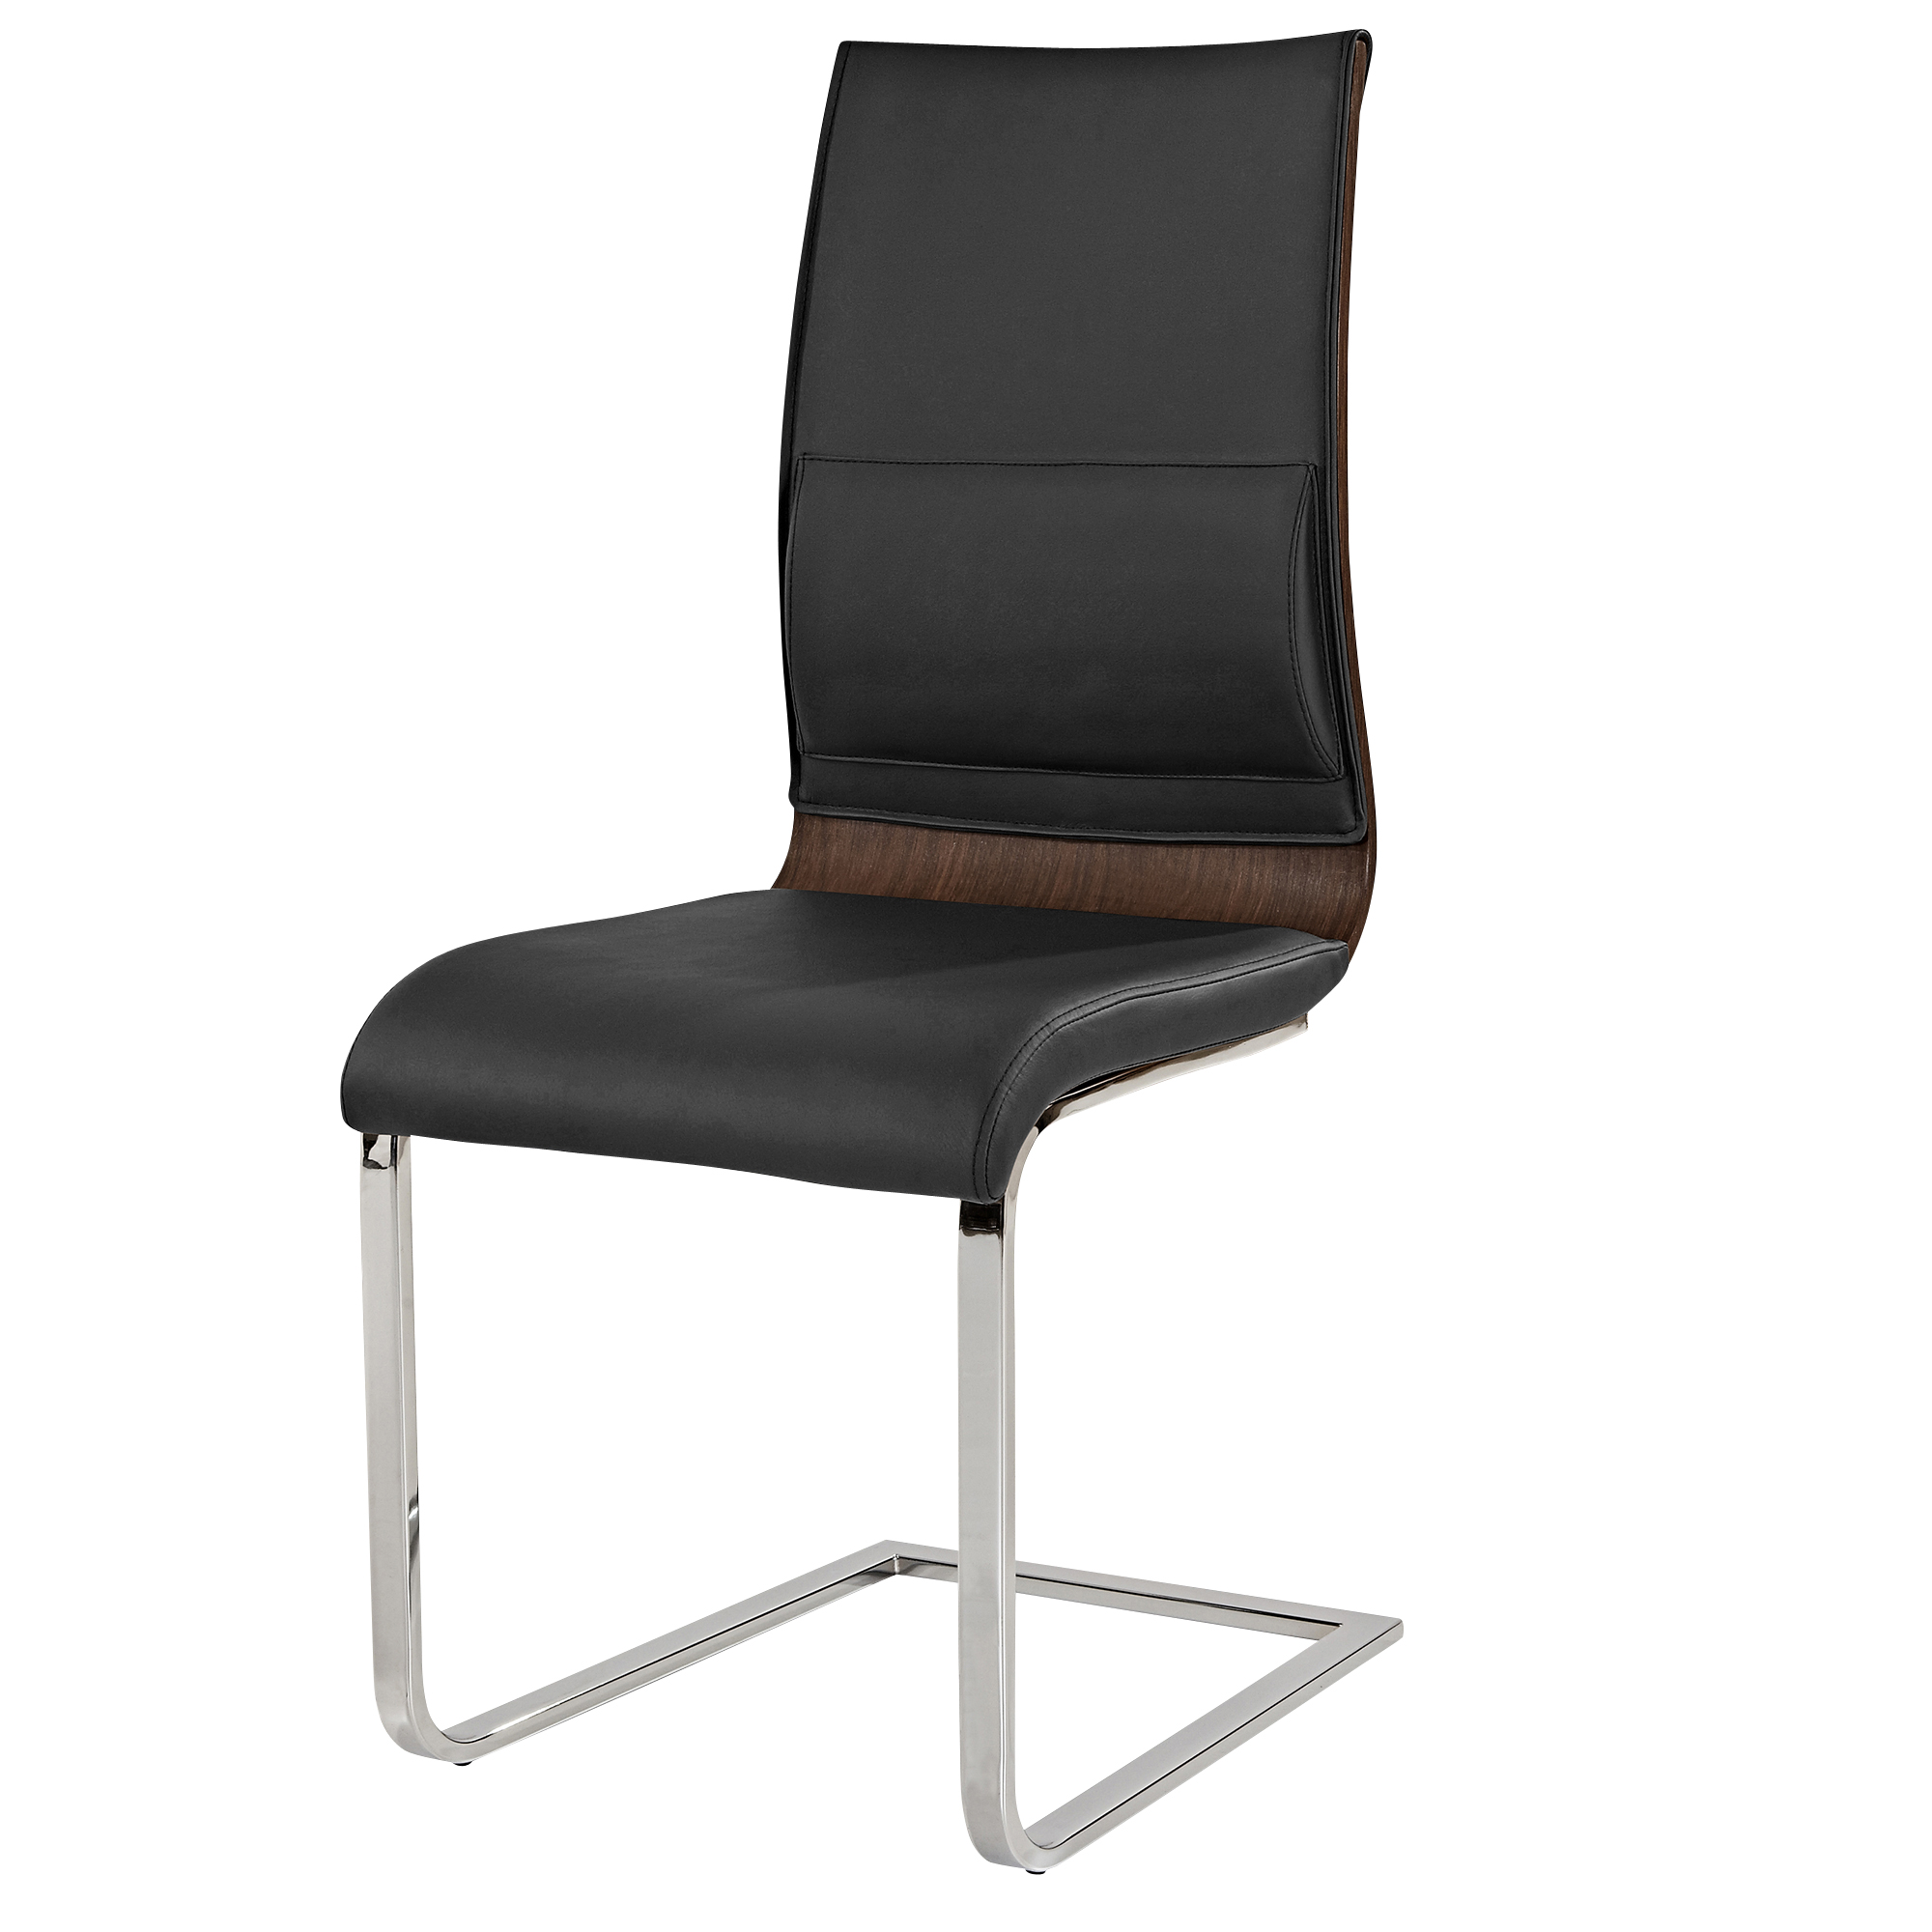 VENETA-SIDE CHAIR-WALNUT, 841173020422, Dining Chairs by Midha Furniture to Brampton, Mississauga, Etobicoke, Toronto, Scraborough, Caledon, Oakville, Markham, Ajax, Pickering, Oshawa, Richmondhill, Kitchener, Hamilton and GTA area